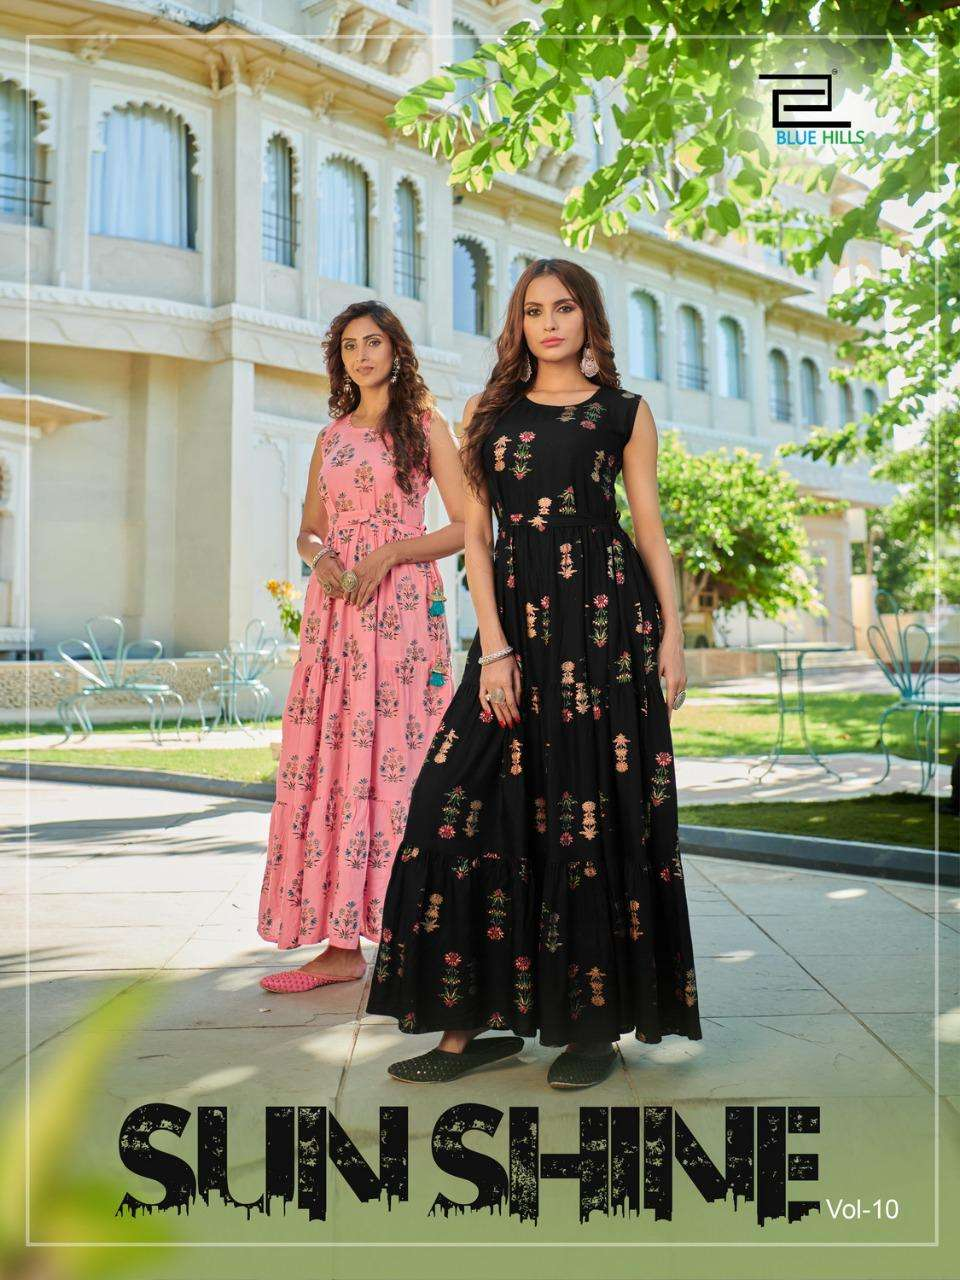 Blue Hills Sunshine Vol 10 By VF India Long Kurti Gown New Collection in Wholesale